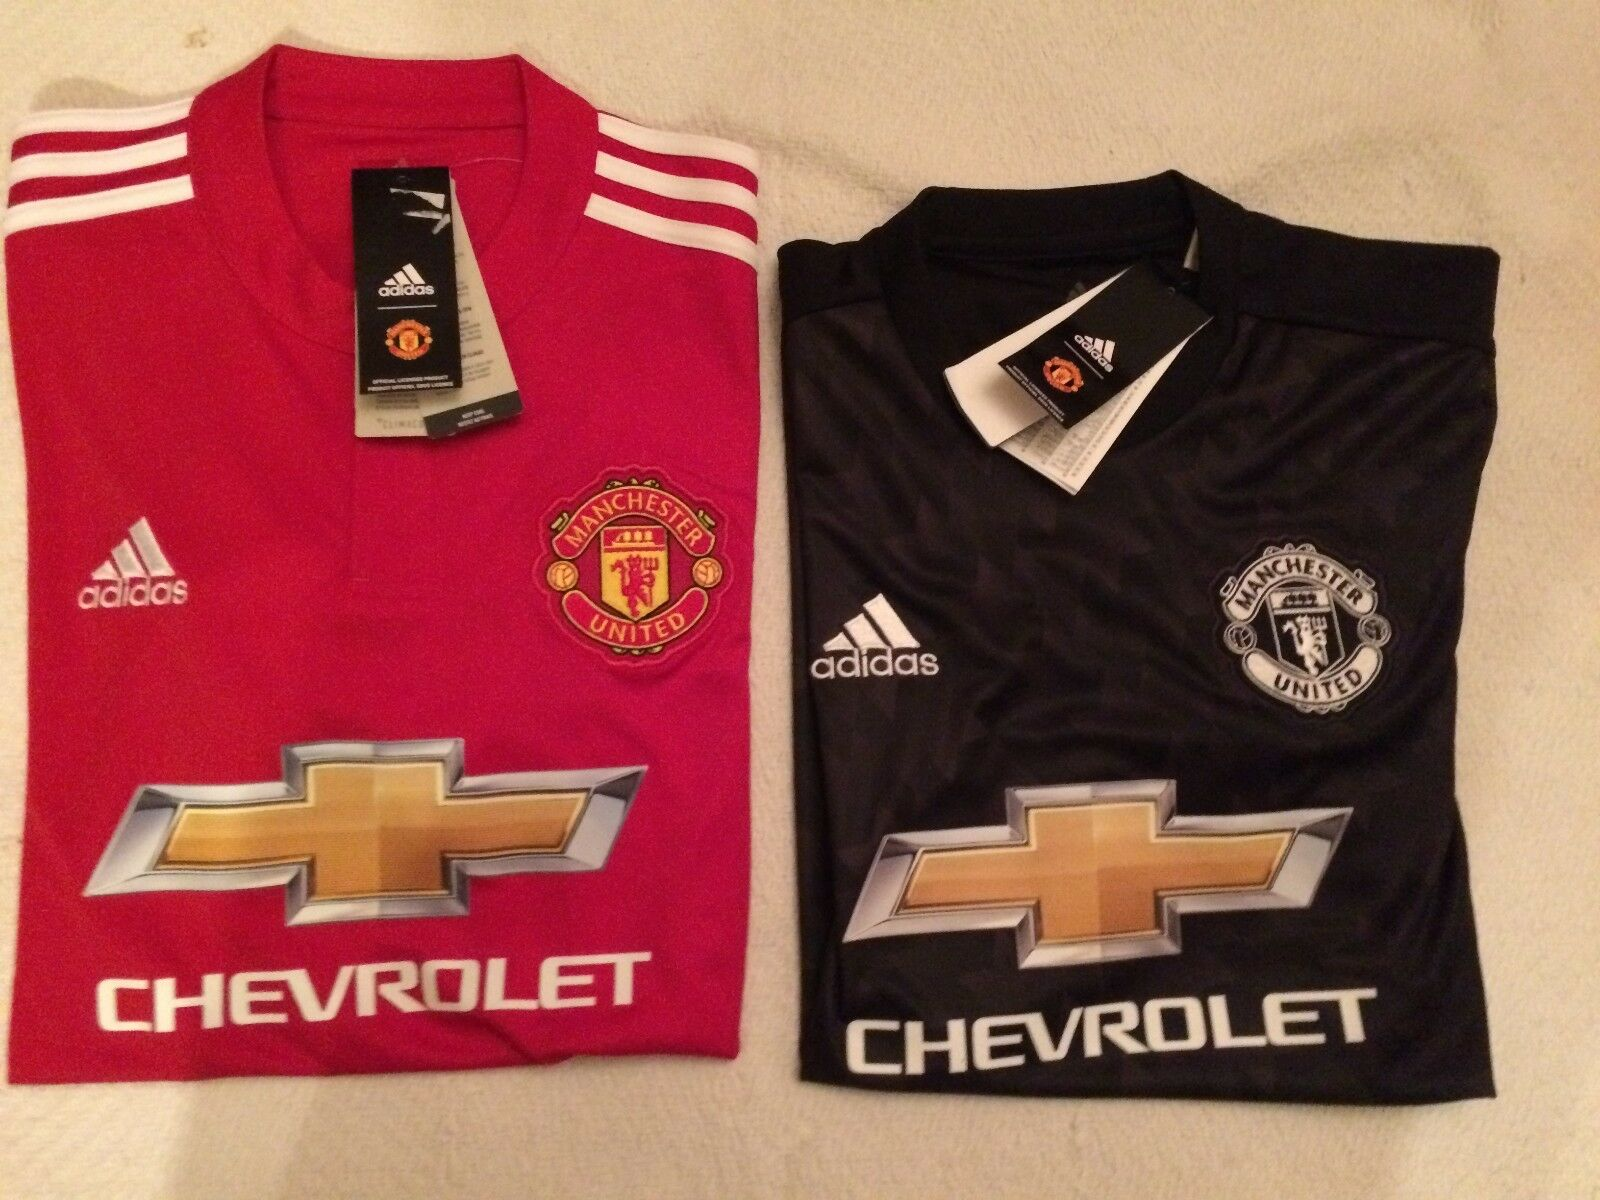 uomochester United 201718 Adidas Home e Away Jersey Diverse Taglie